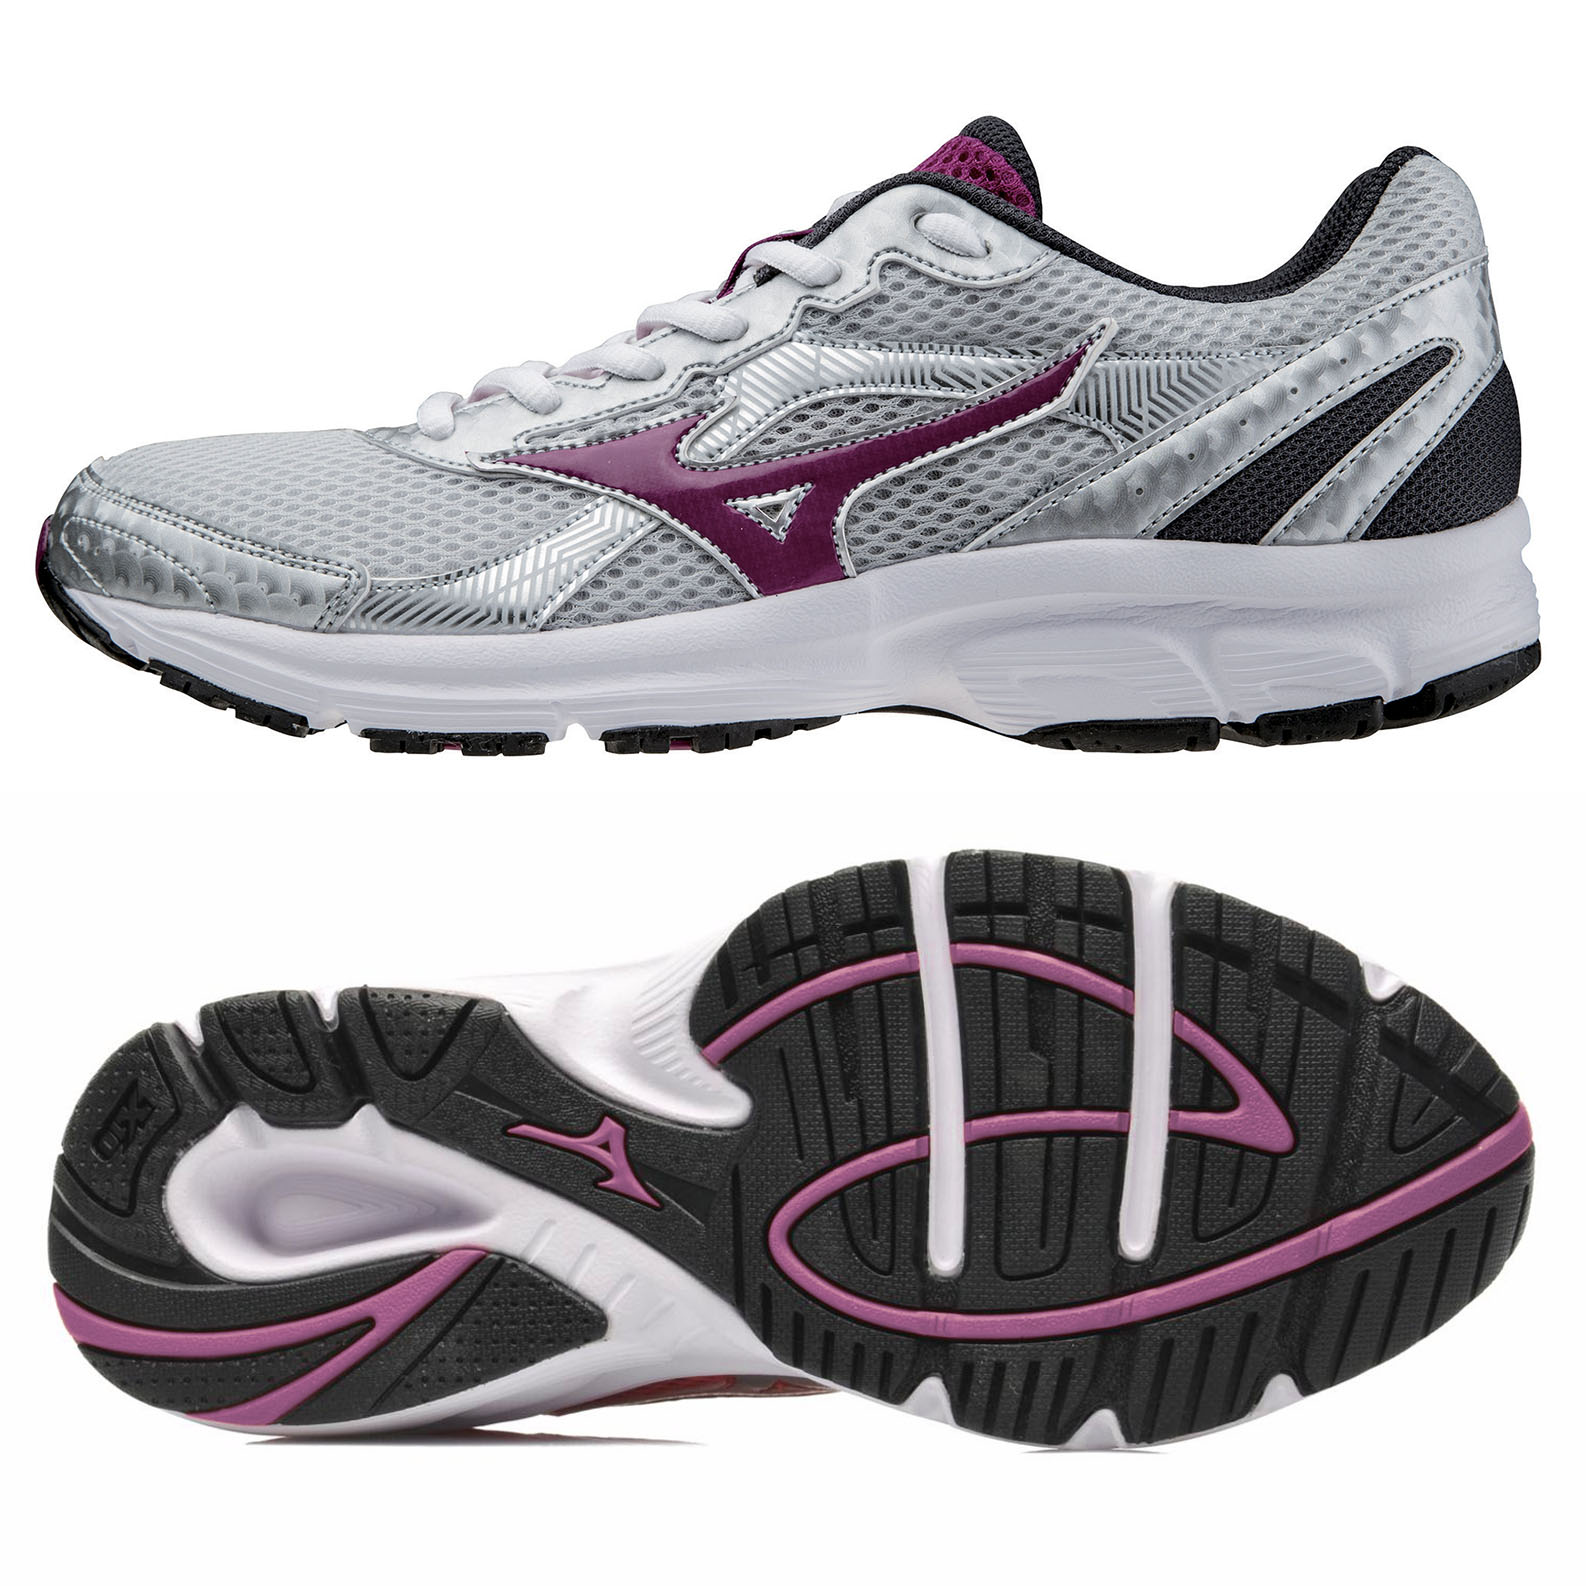 Mizuno Crusader 9 Ladies Running Shoes SS15 - 4 UK